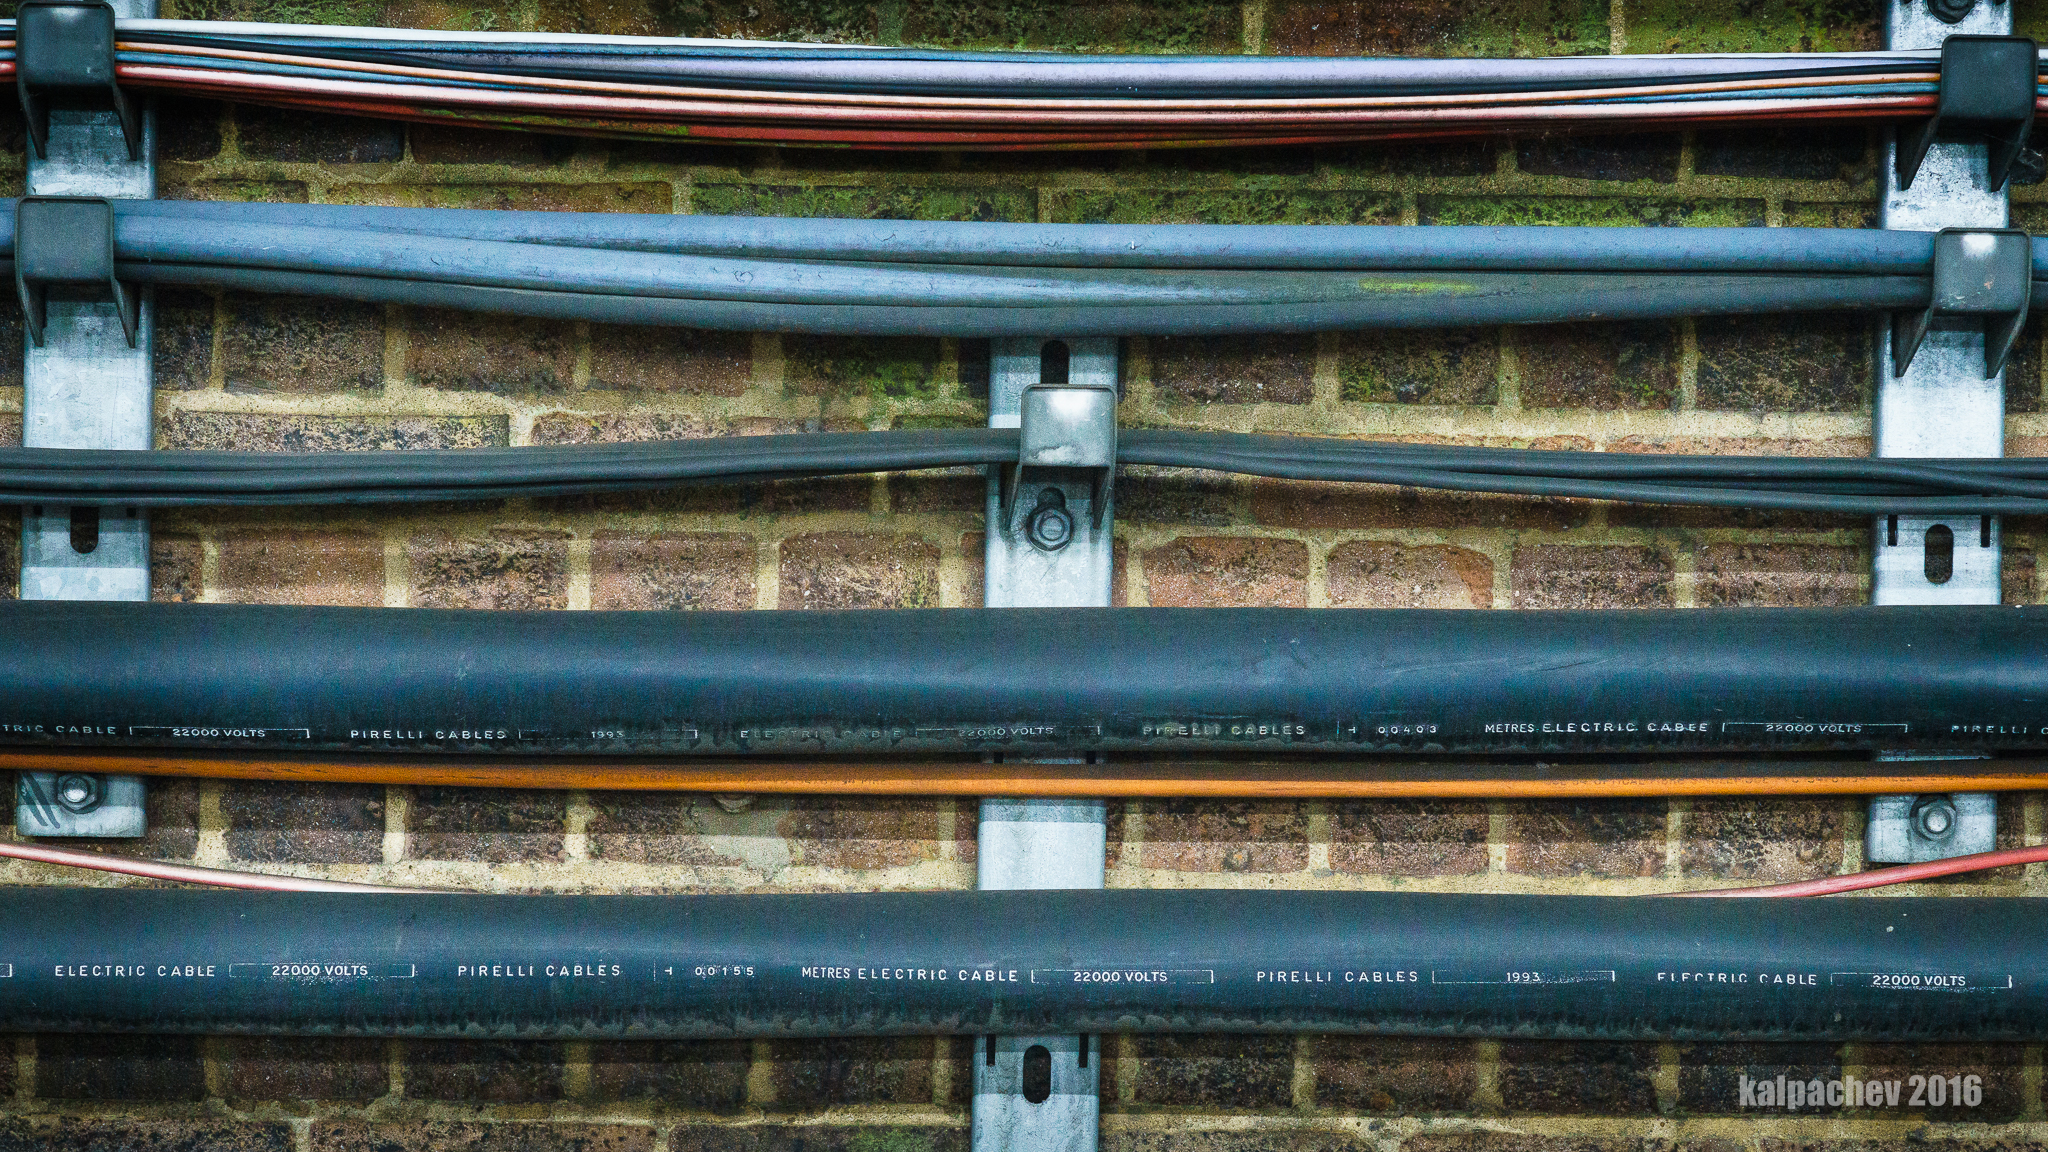 Pirelli cables at London Underground #pirellicables